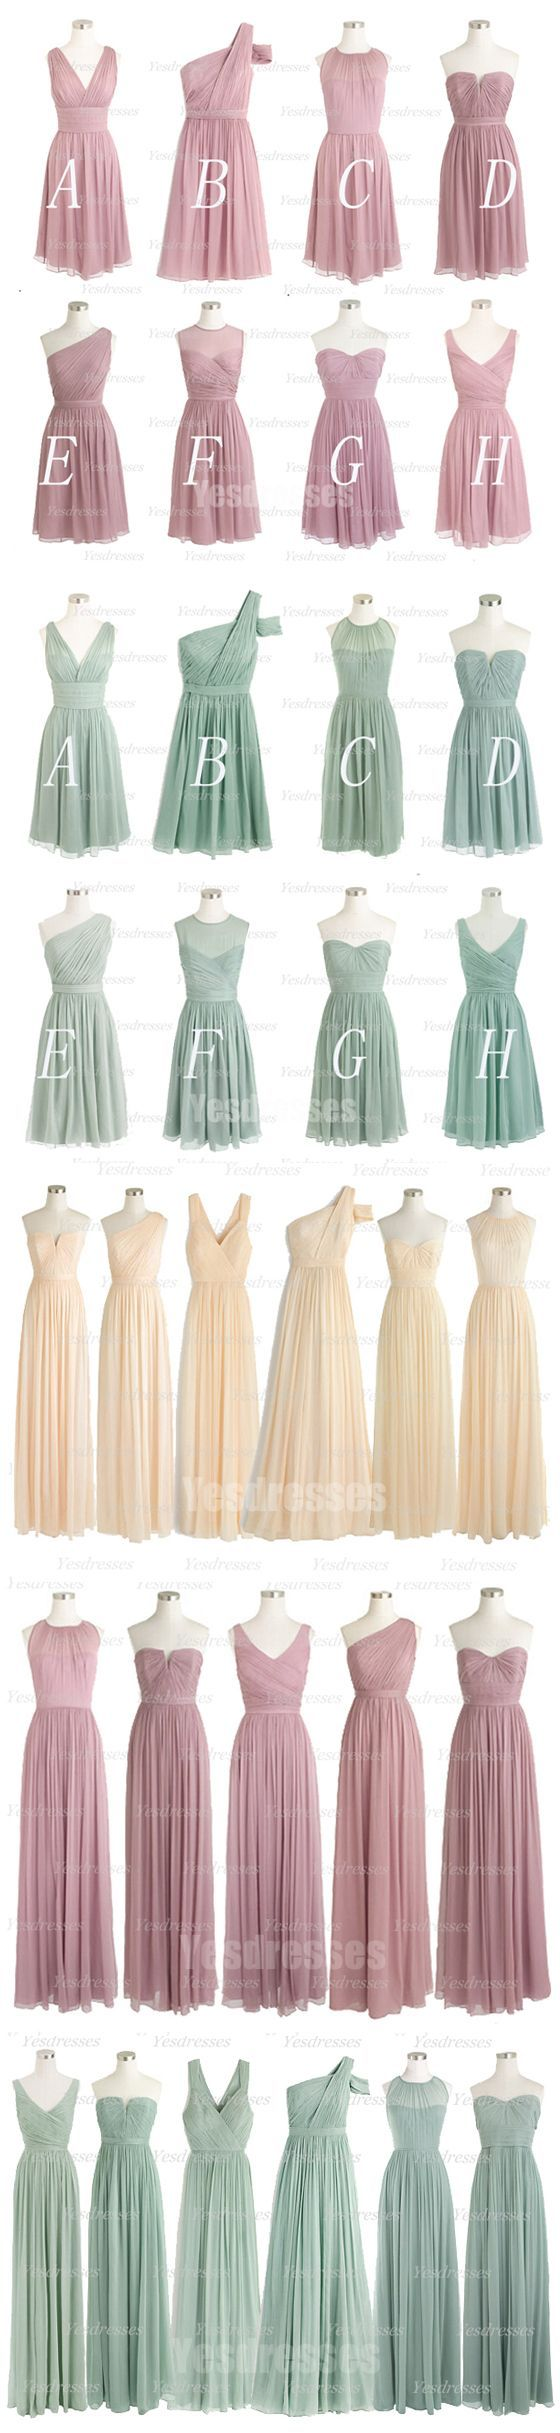 Wow so many styles ilove the colors longshort mismatched best sale cheap simple mismatched styles chiffon floor length formal long teal green bridesmaid dresses the long bridesmaid dresses are fully lined 4 bo ombrellifo Choice Image